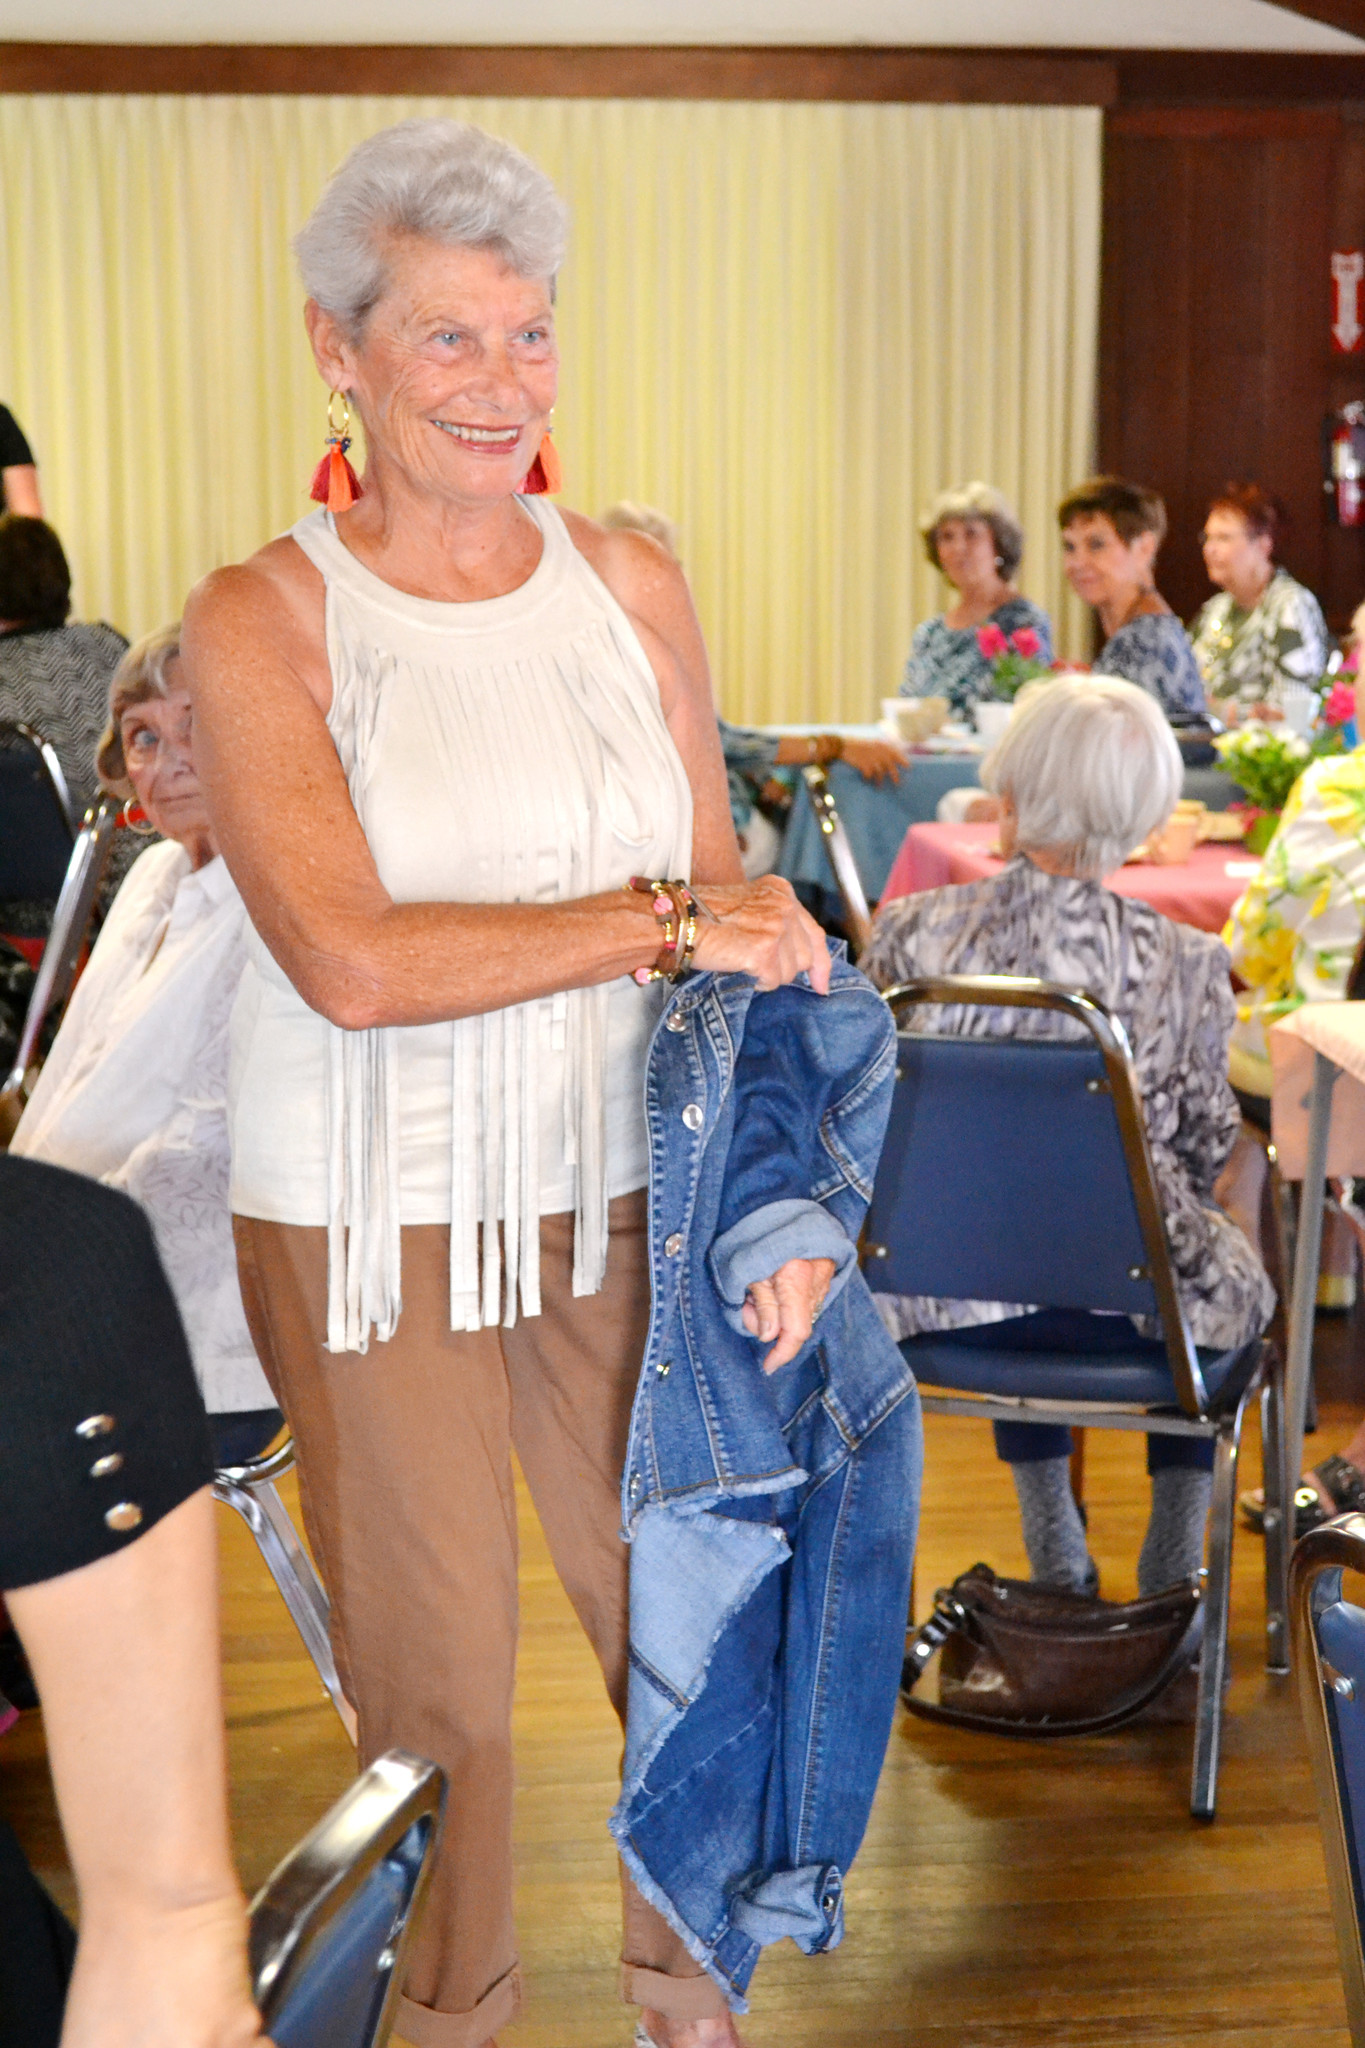 Sandy Bedard takes off her denim jacket to show luncheon guests the fringe top she wears underneath.